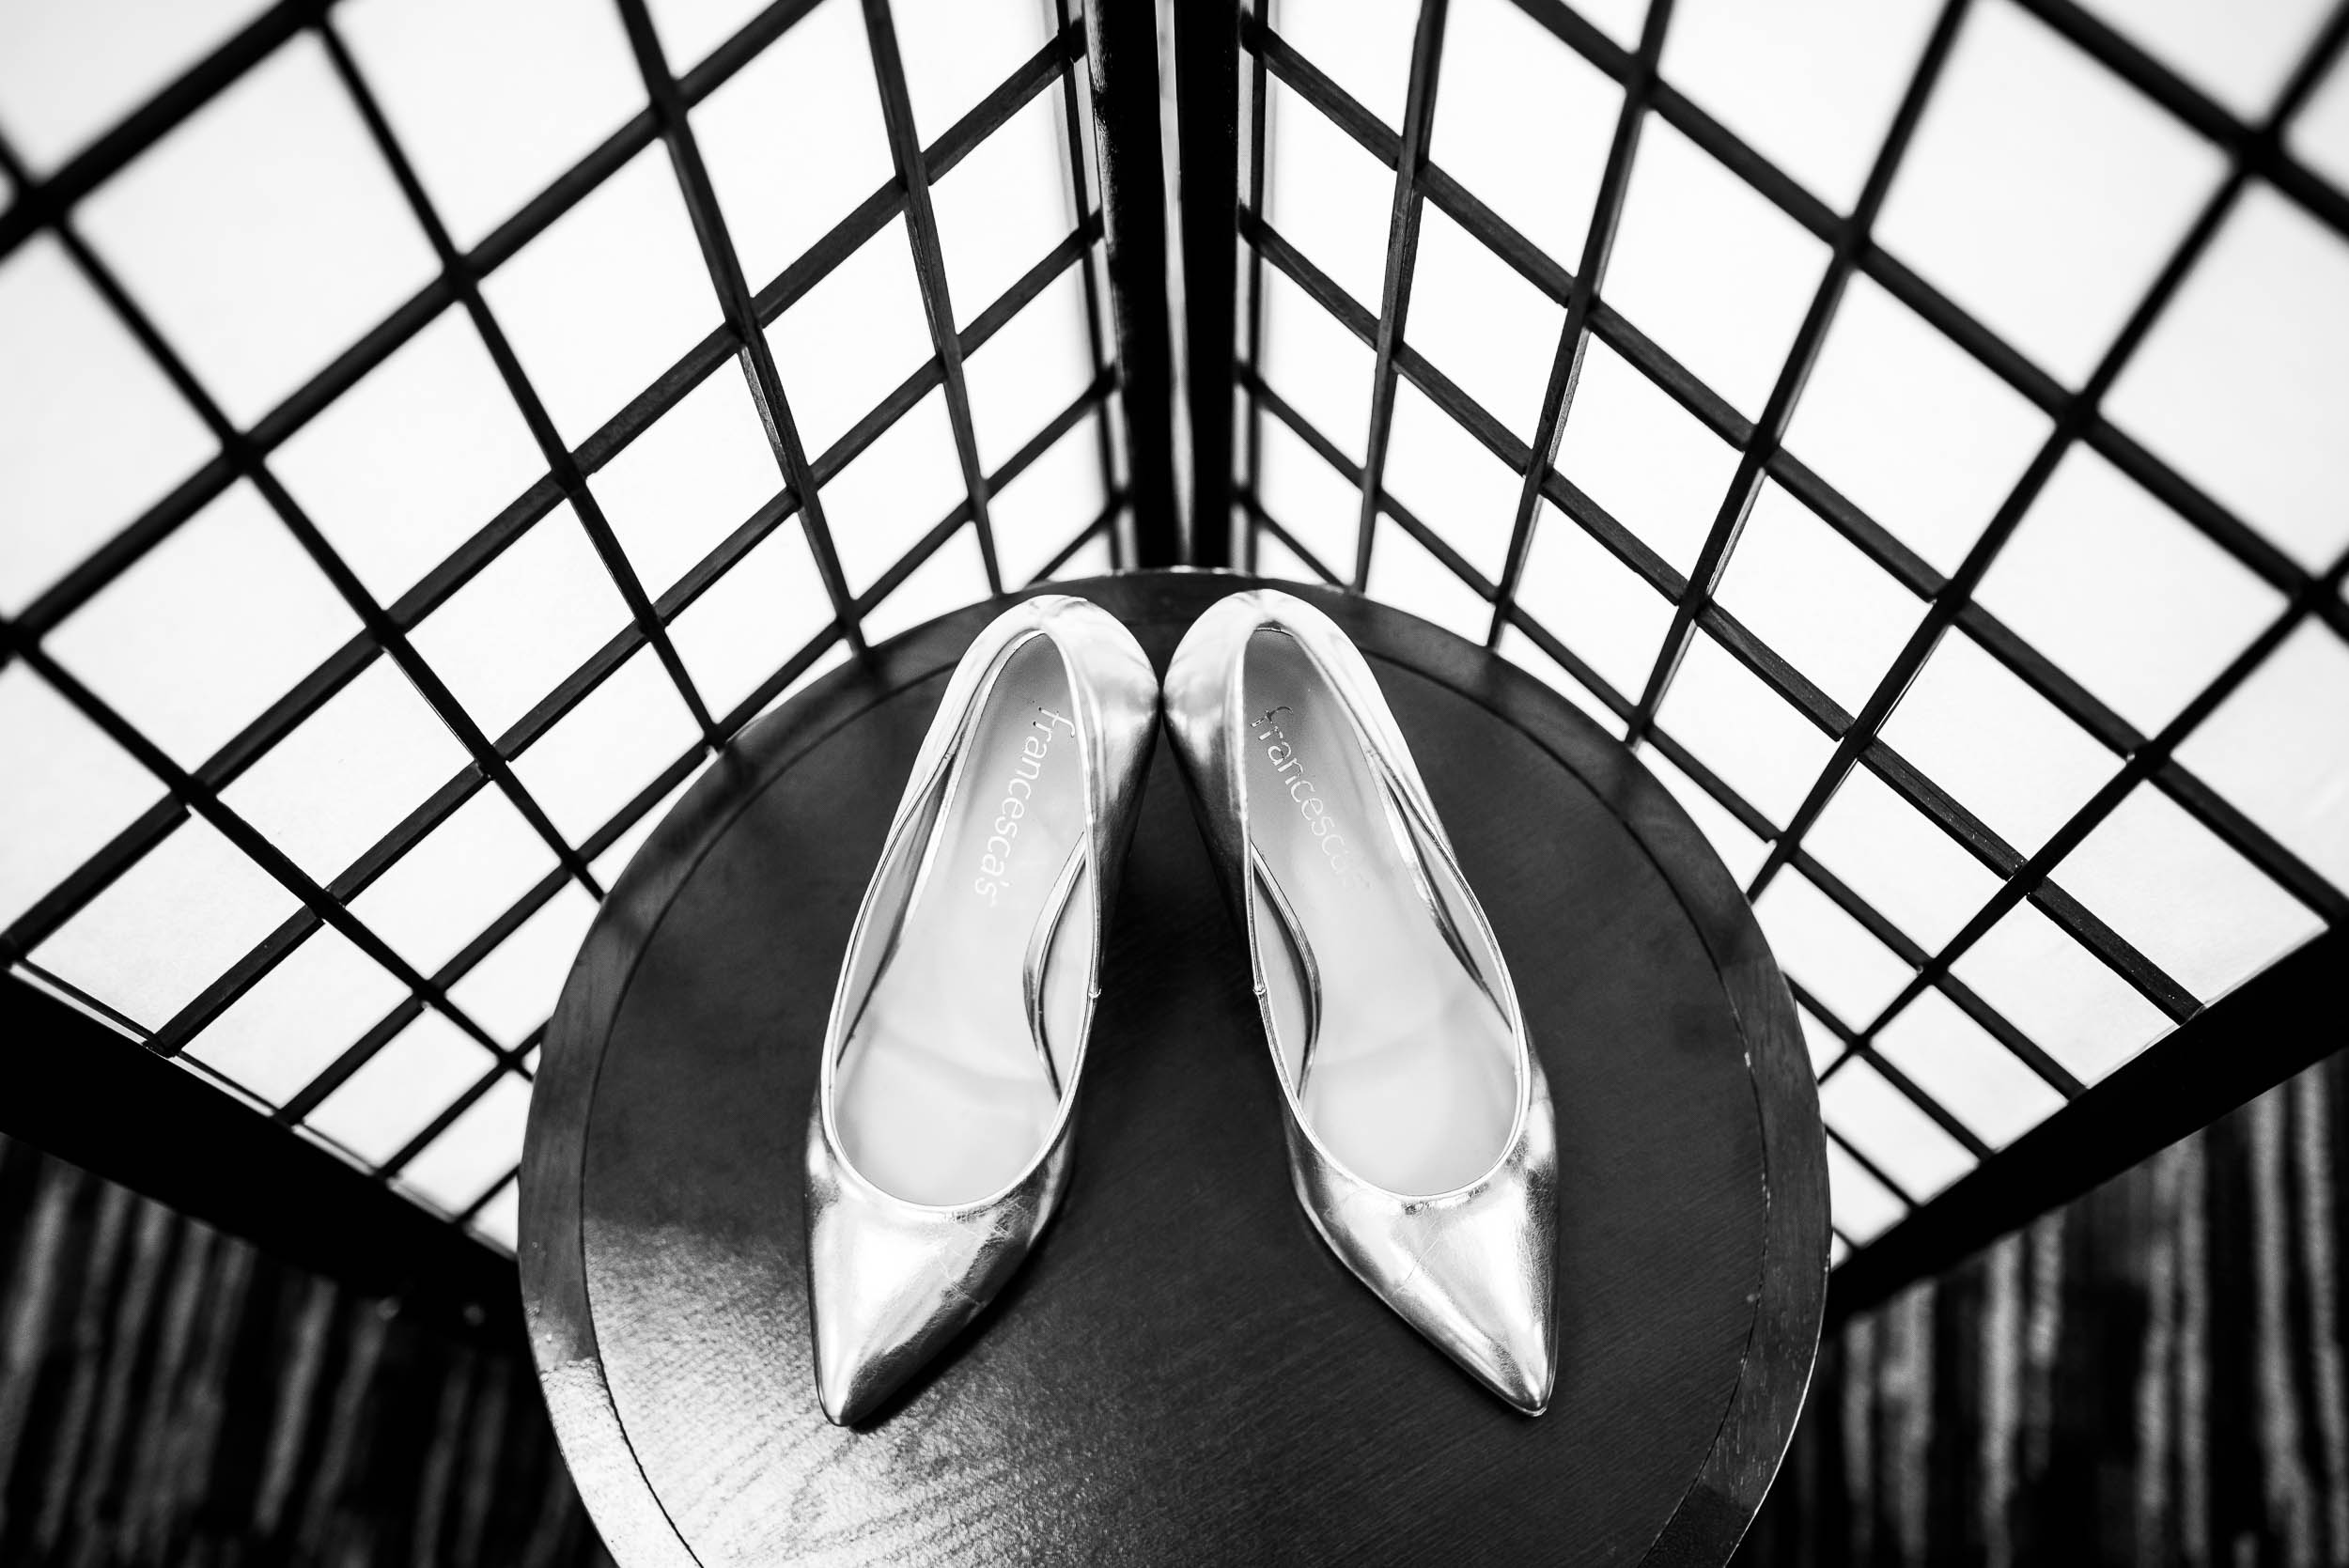 Bridal Shoes: Modern industrial Chicago wedding inside Prairie Street Brewhouse captured by J. Brown Photography. Find more wedding ideas at jbrownphotography.com!